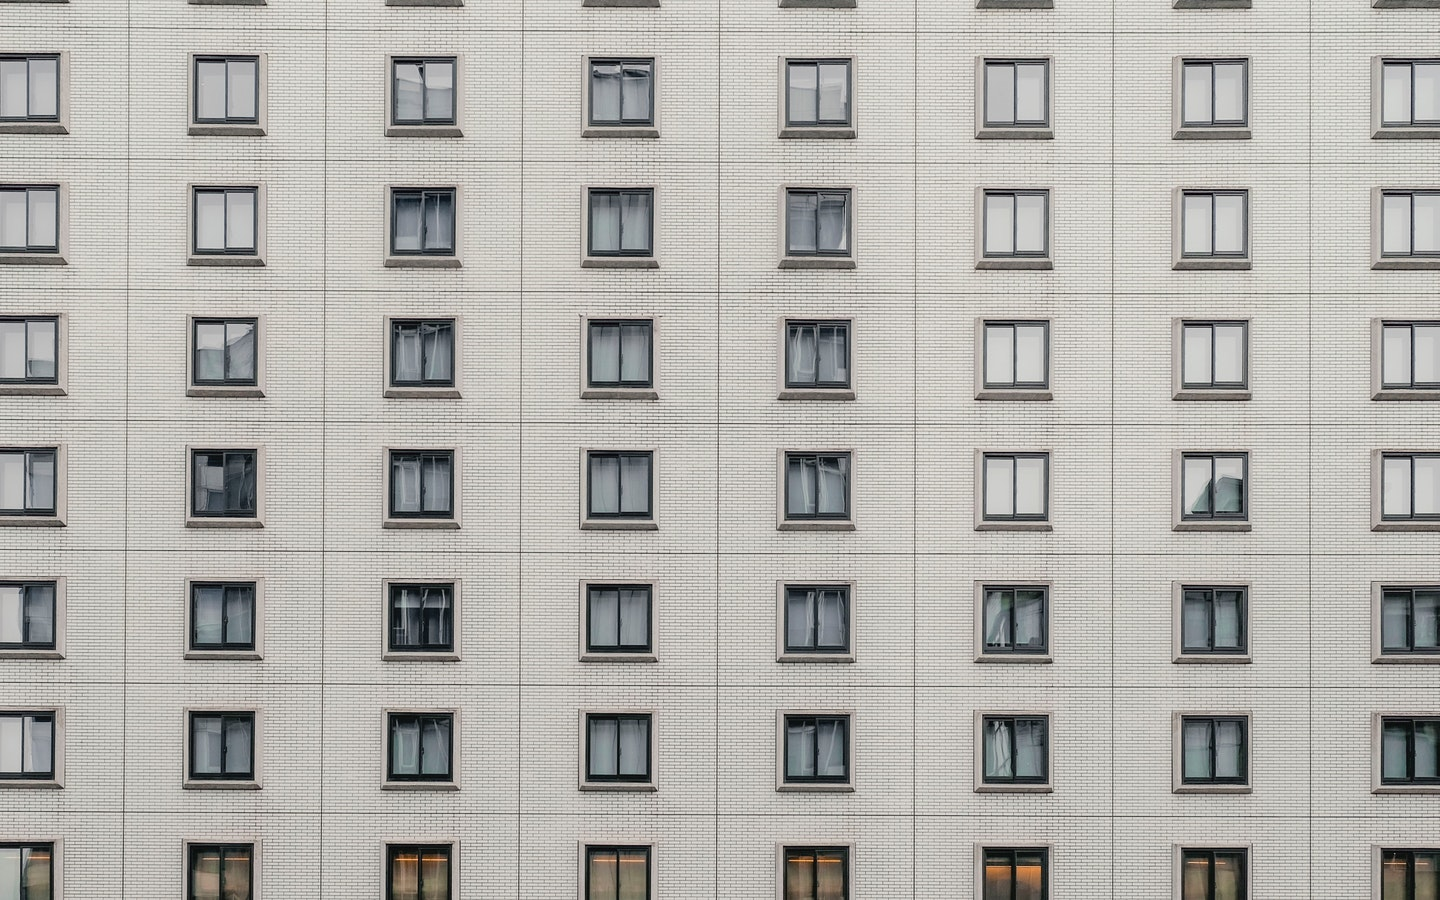 building with many windows